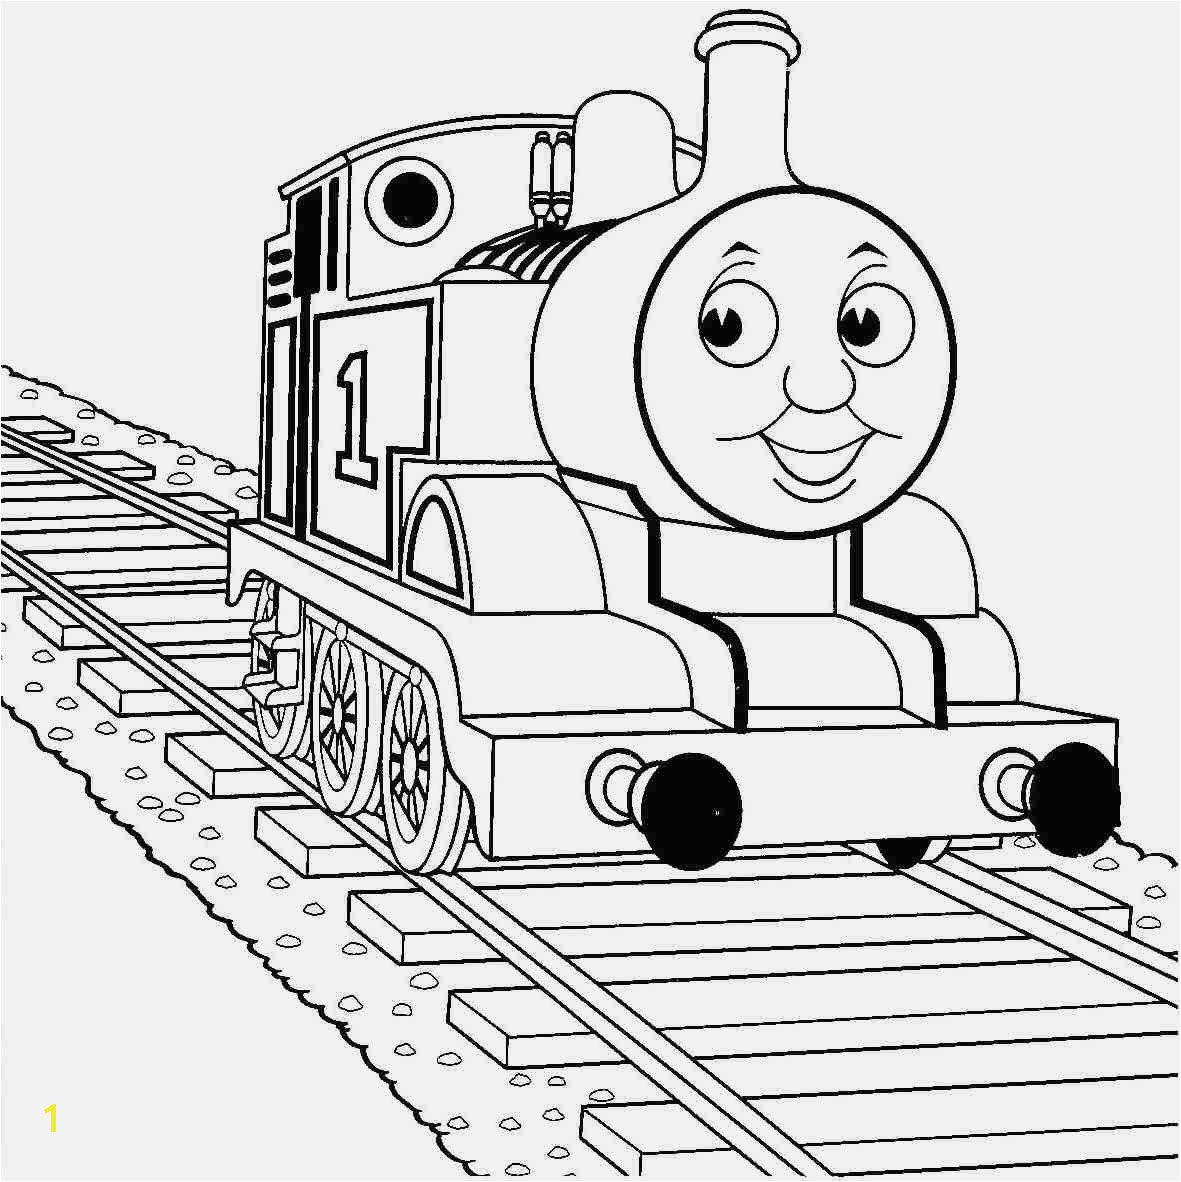 Thomas the Train Coloring Pages Best Easy 41 Coloring Pages Thomas the Train Printable Thomas the Train